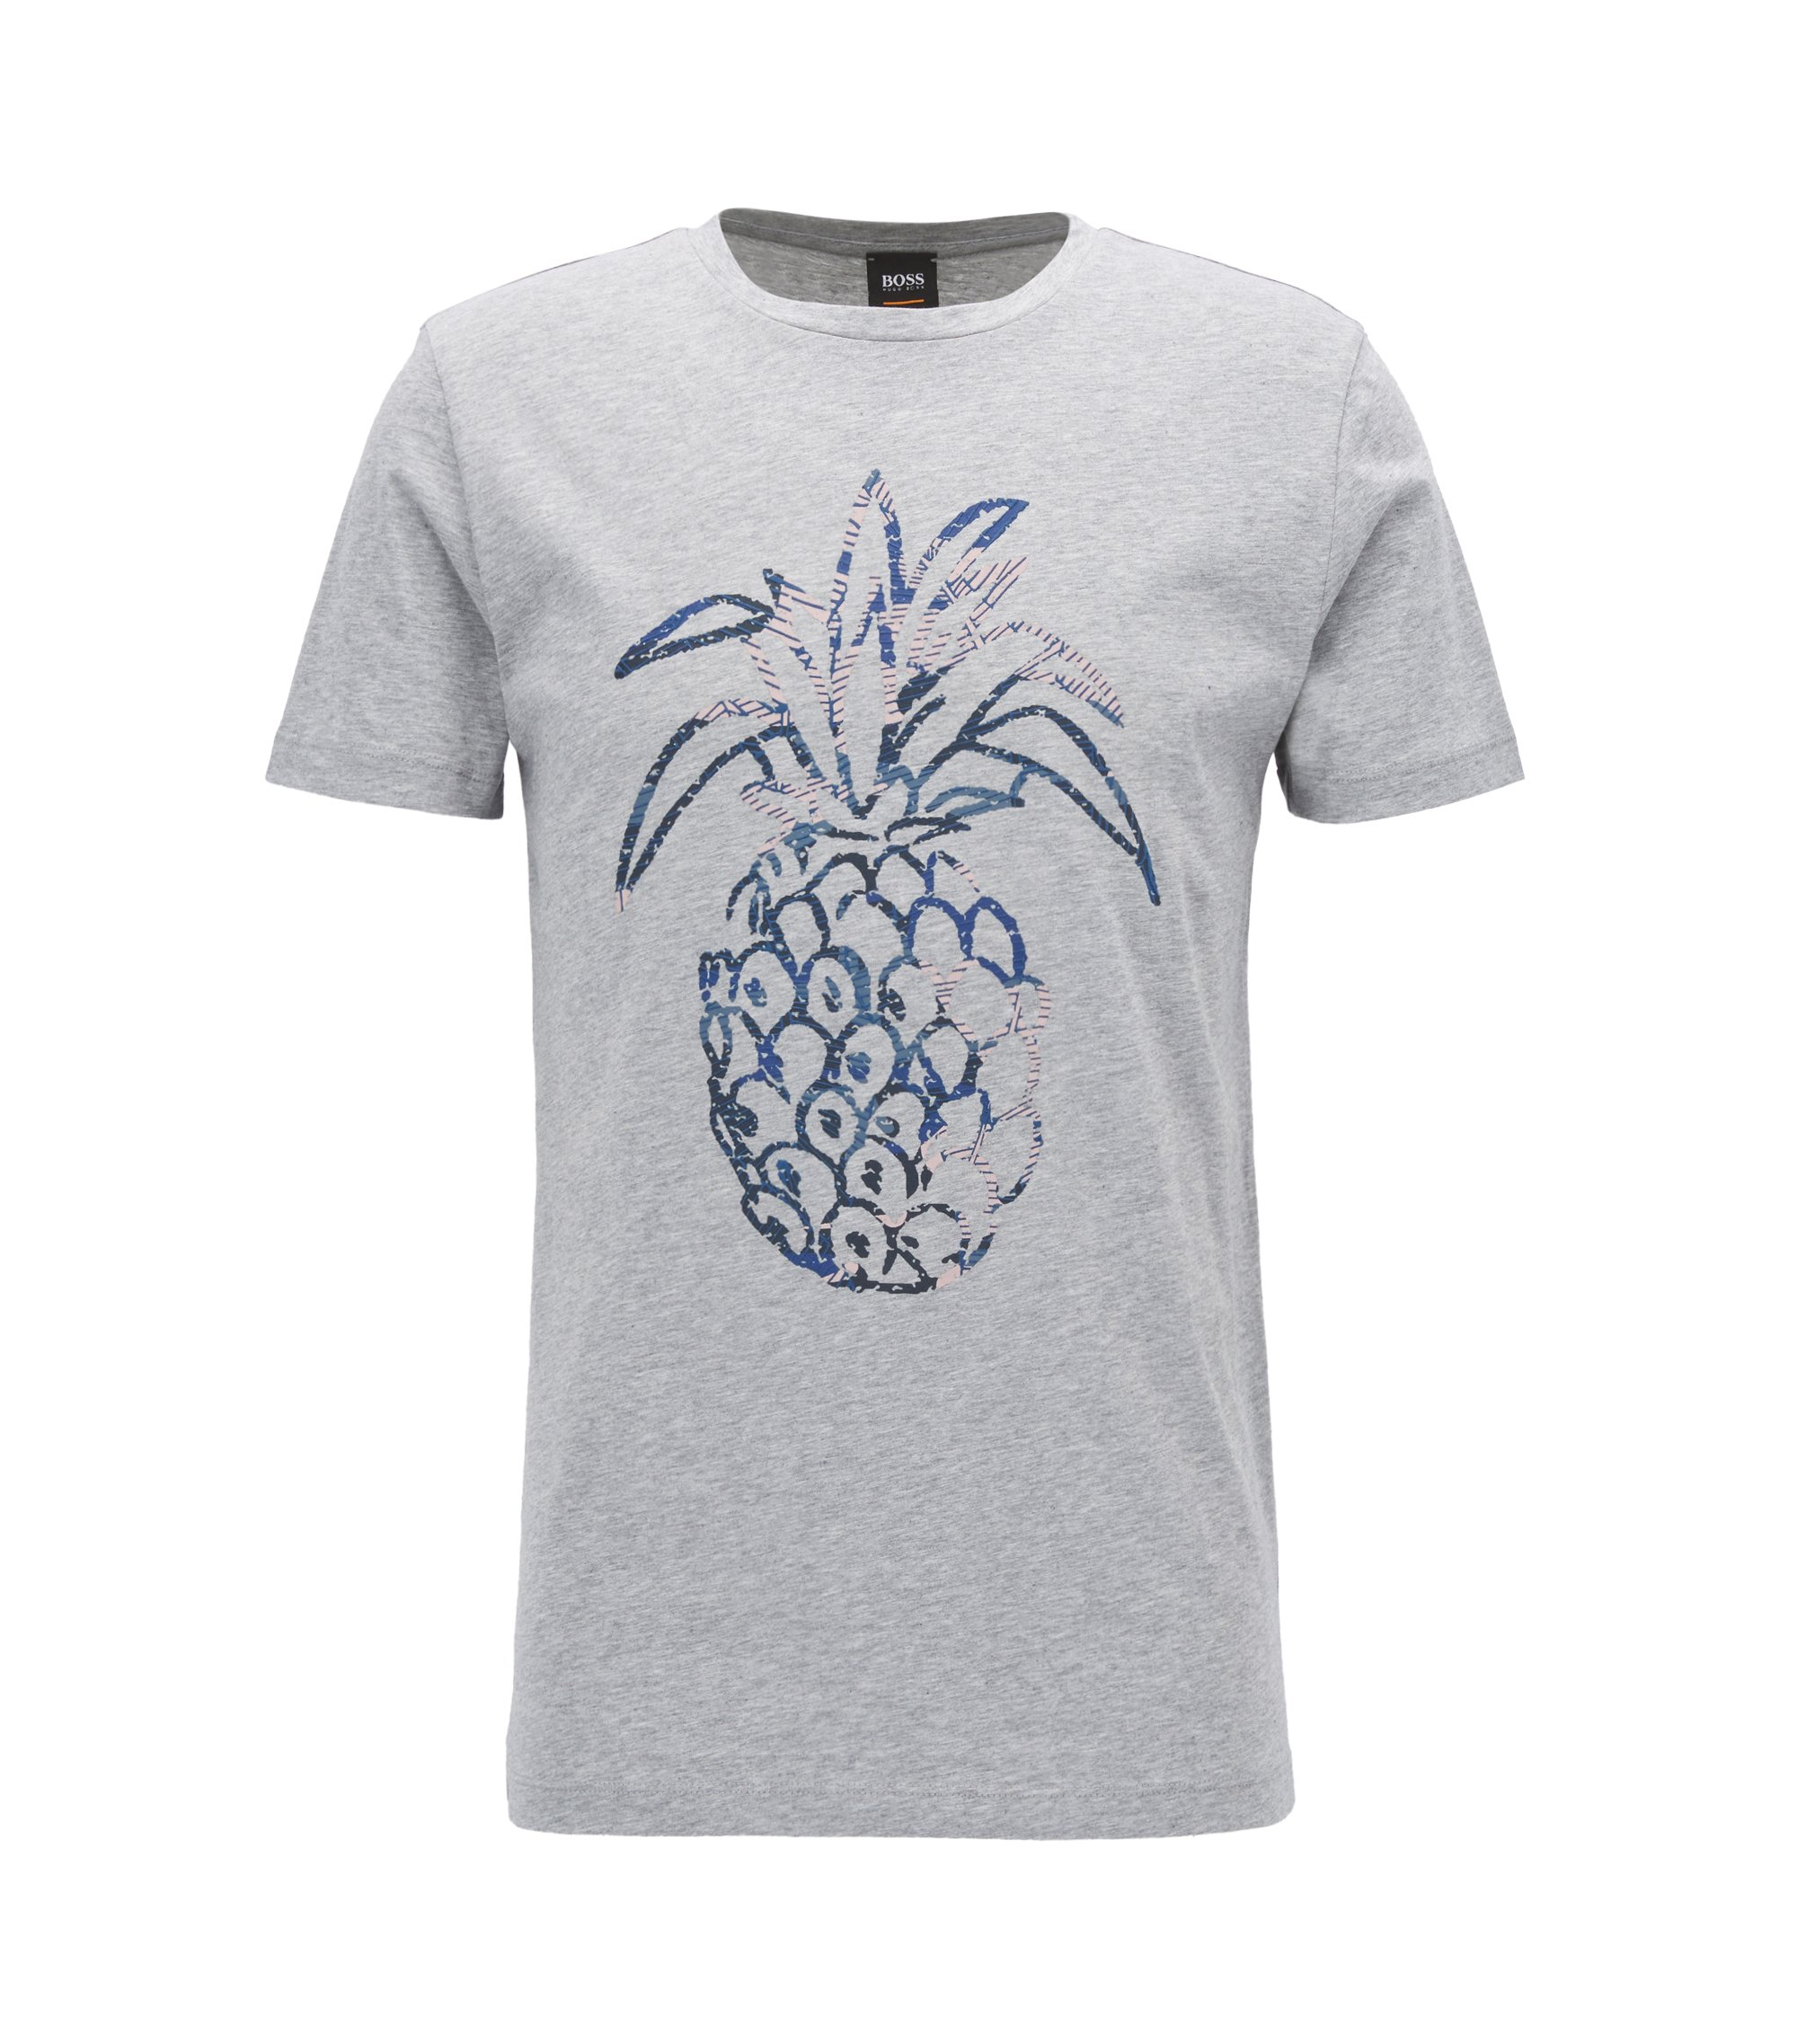 Regular-fit pineapple-print T-shirt in washed cotton jersey, Light Grey